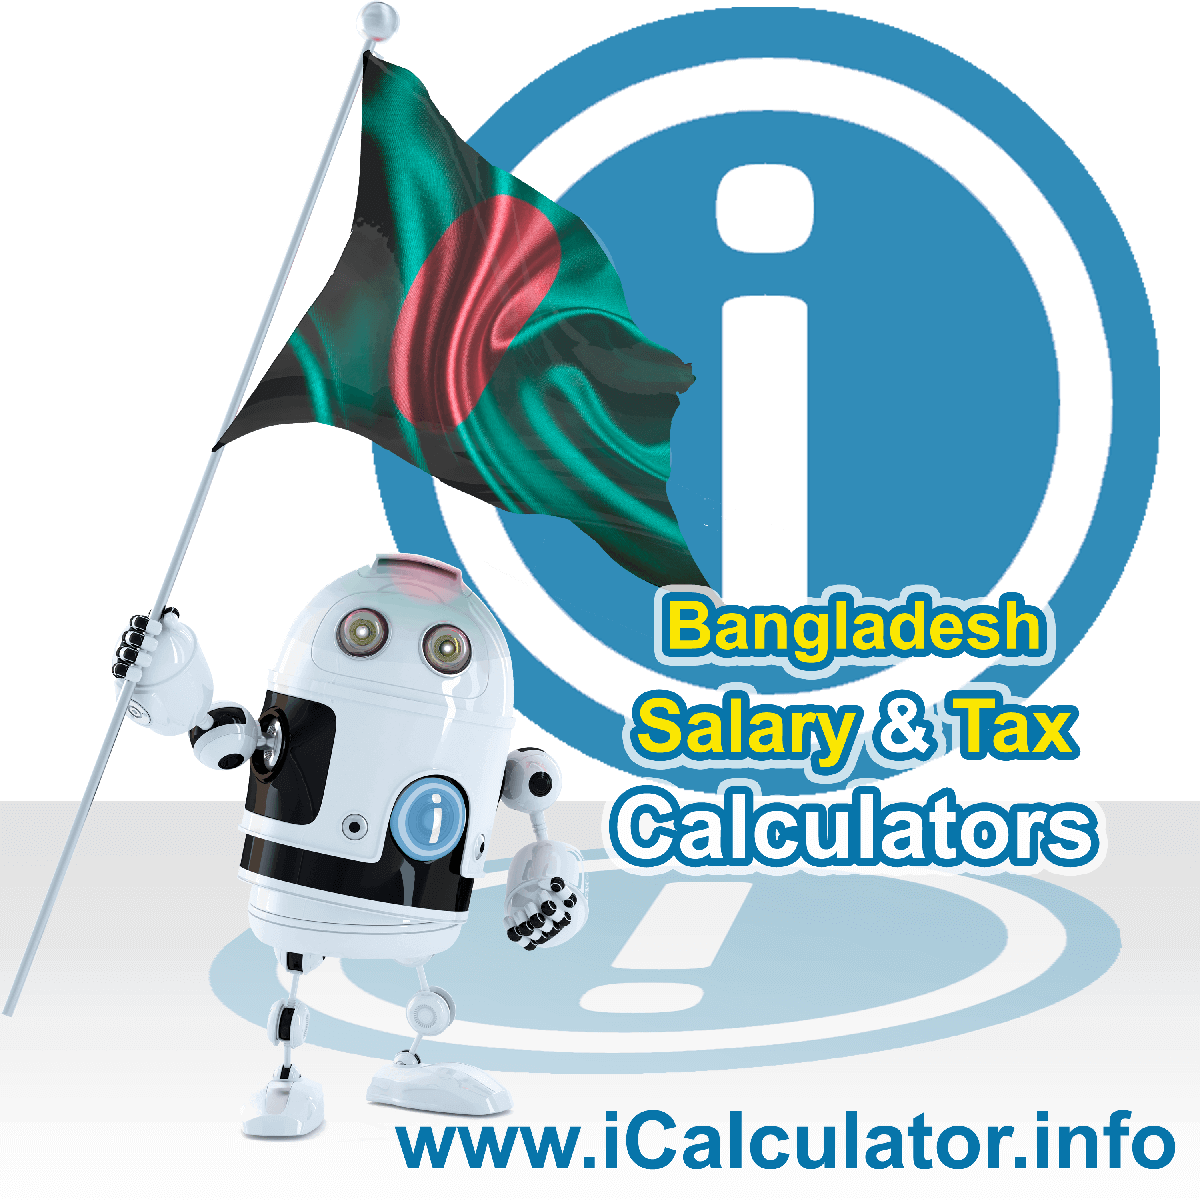 Bangladesh Tax Calculator. This image shows the Bangladesh flag and information relating to the tax formula for the Bangladesh Salary Calculator